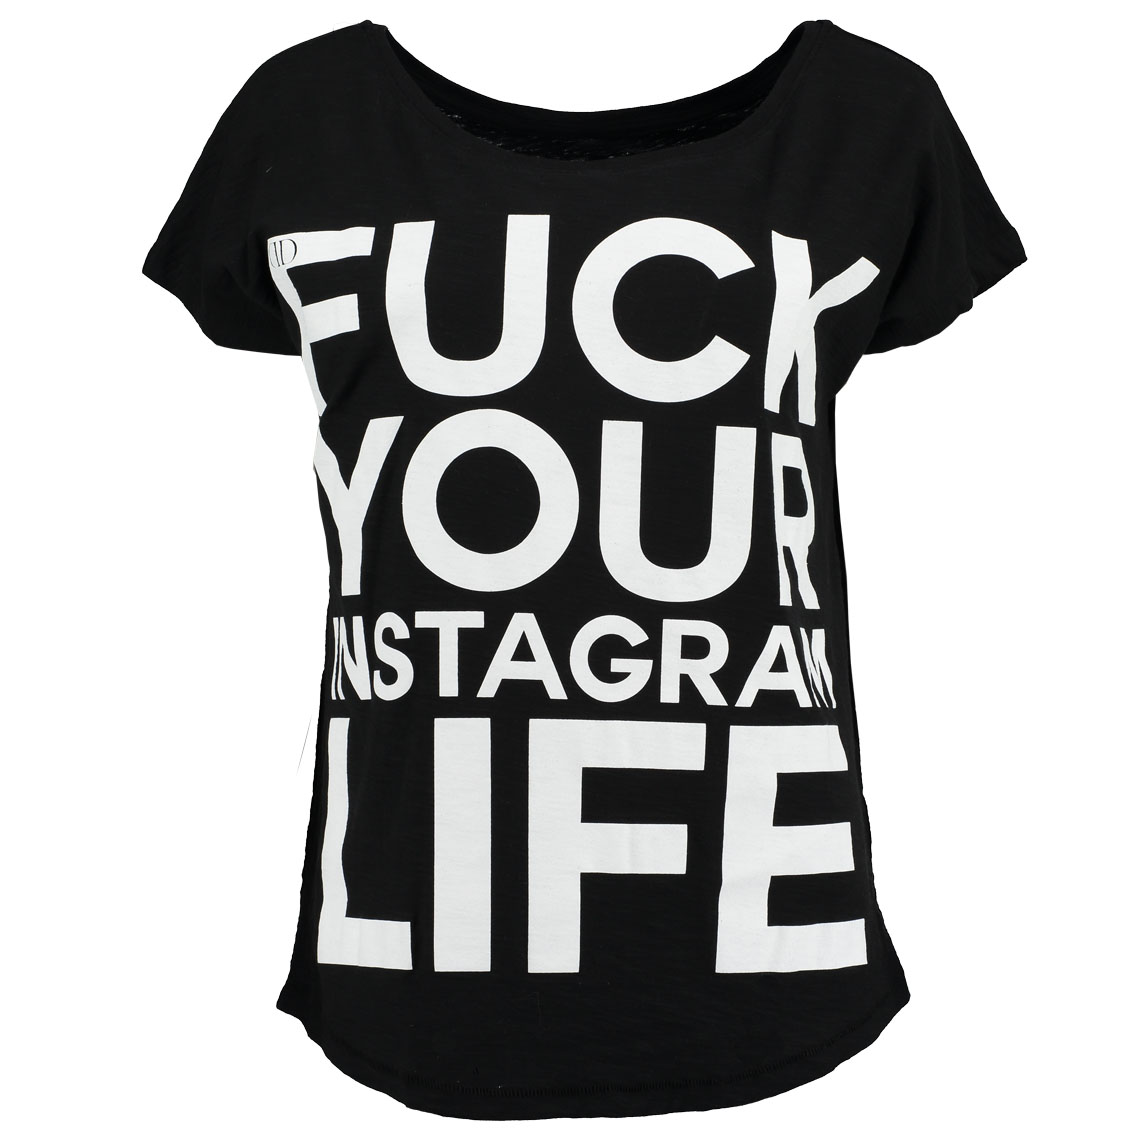 Deportment Department Fuck Your Instagram Life T shirt womens black worn